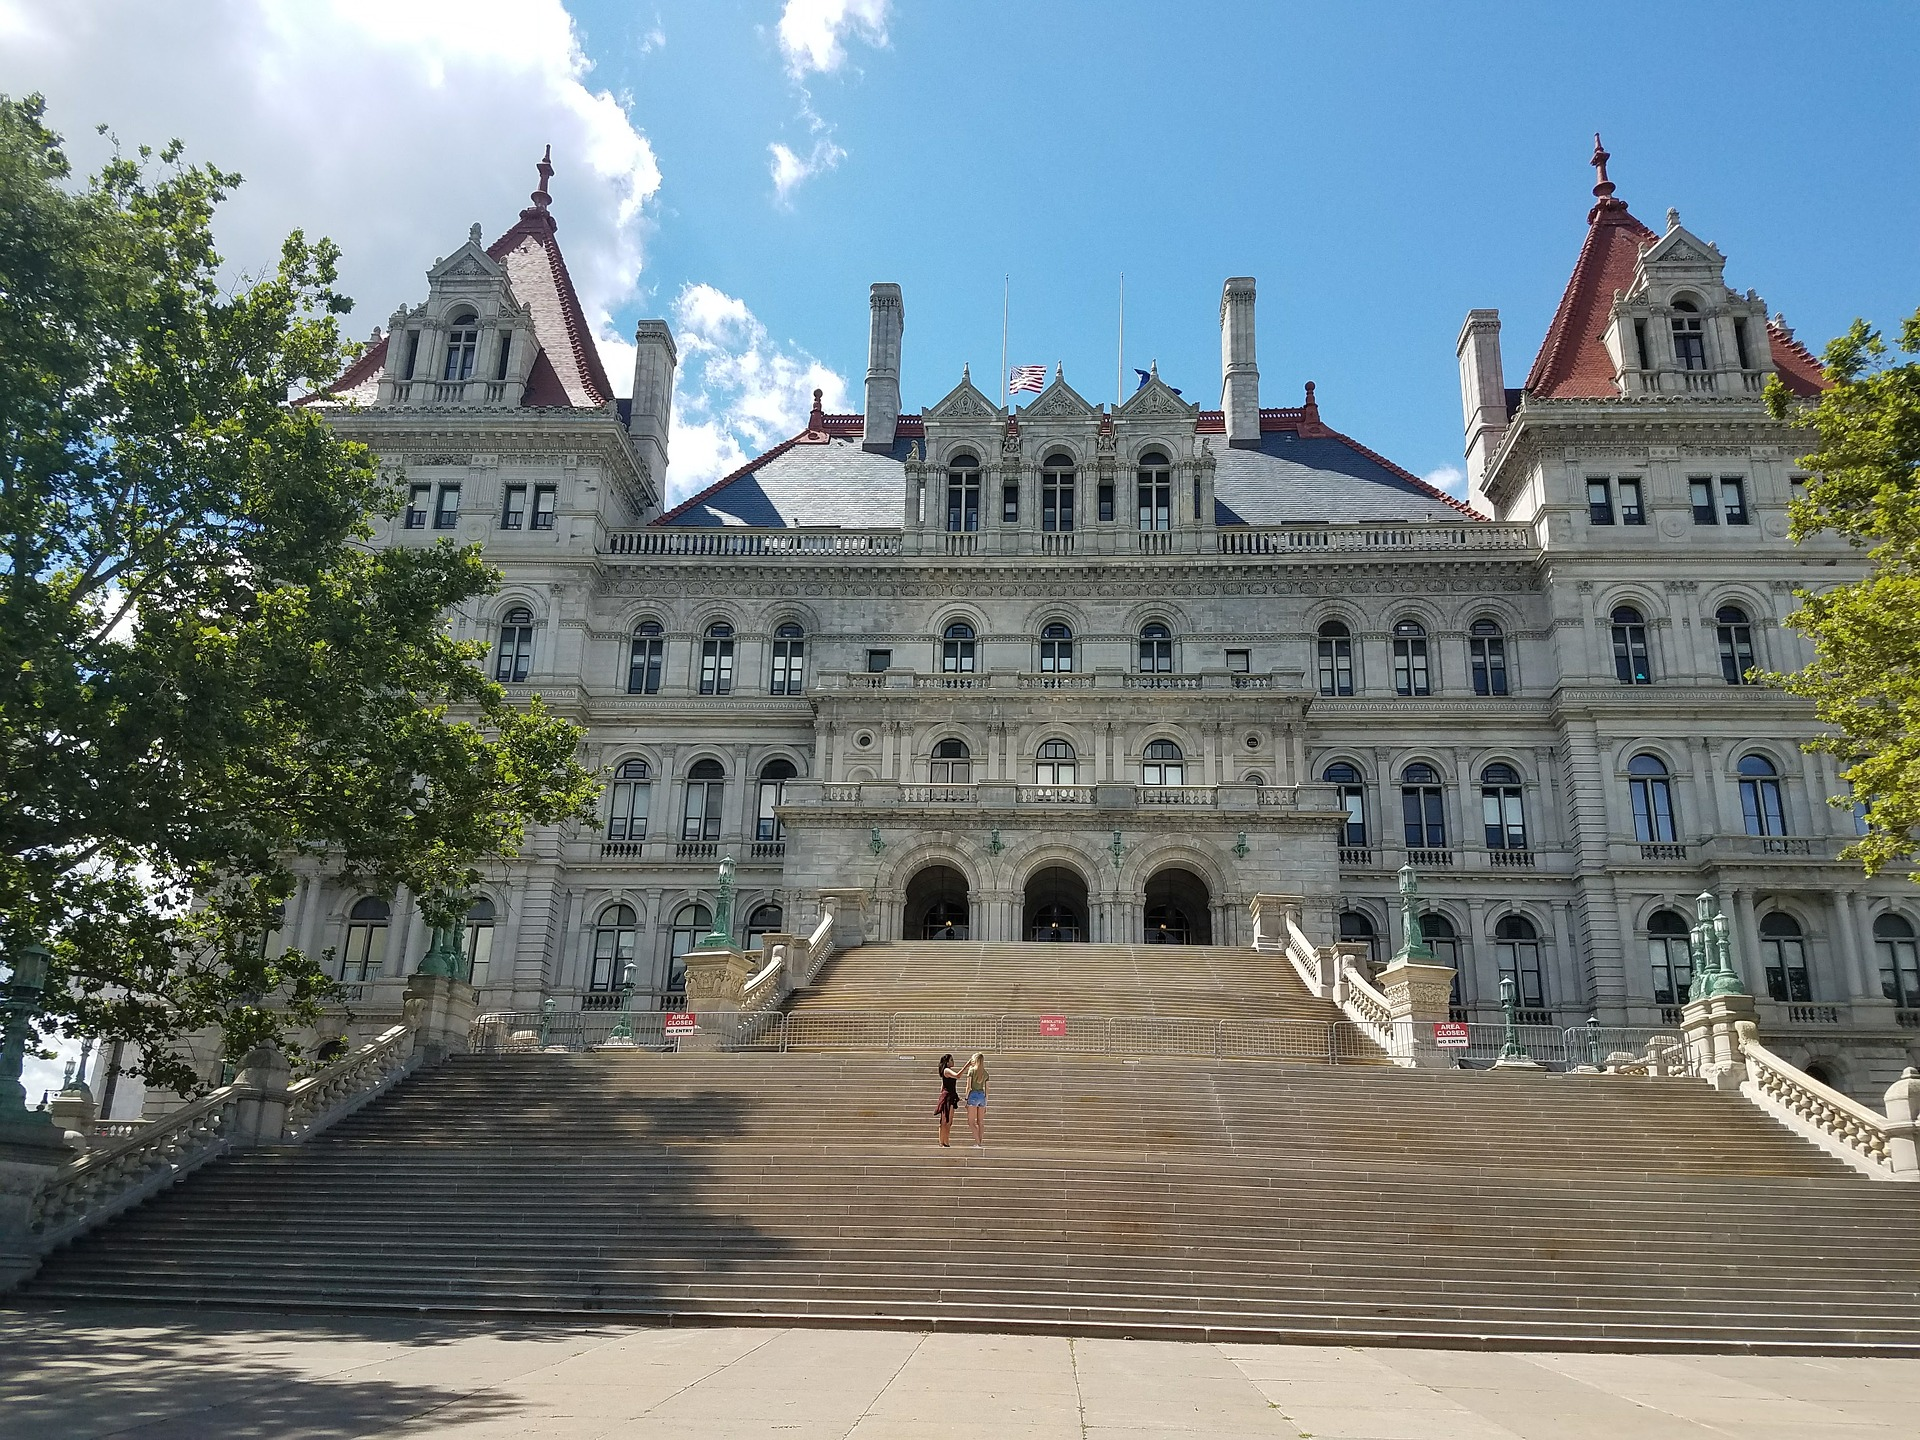 NY state capital in Albany | Image by LoveBuiltLife from Pixabay